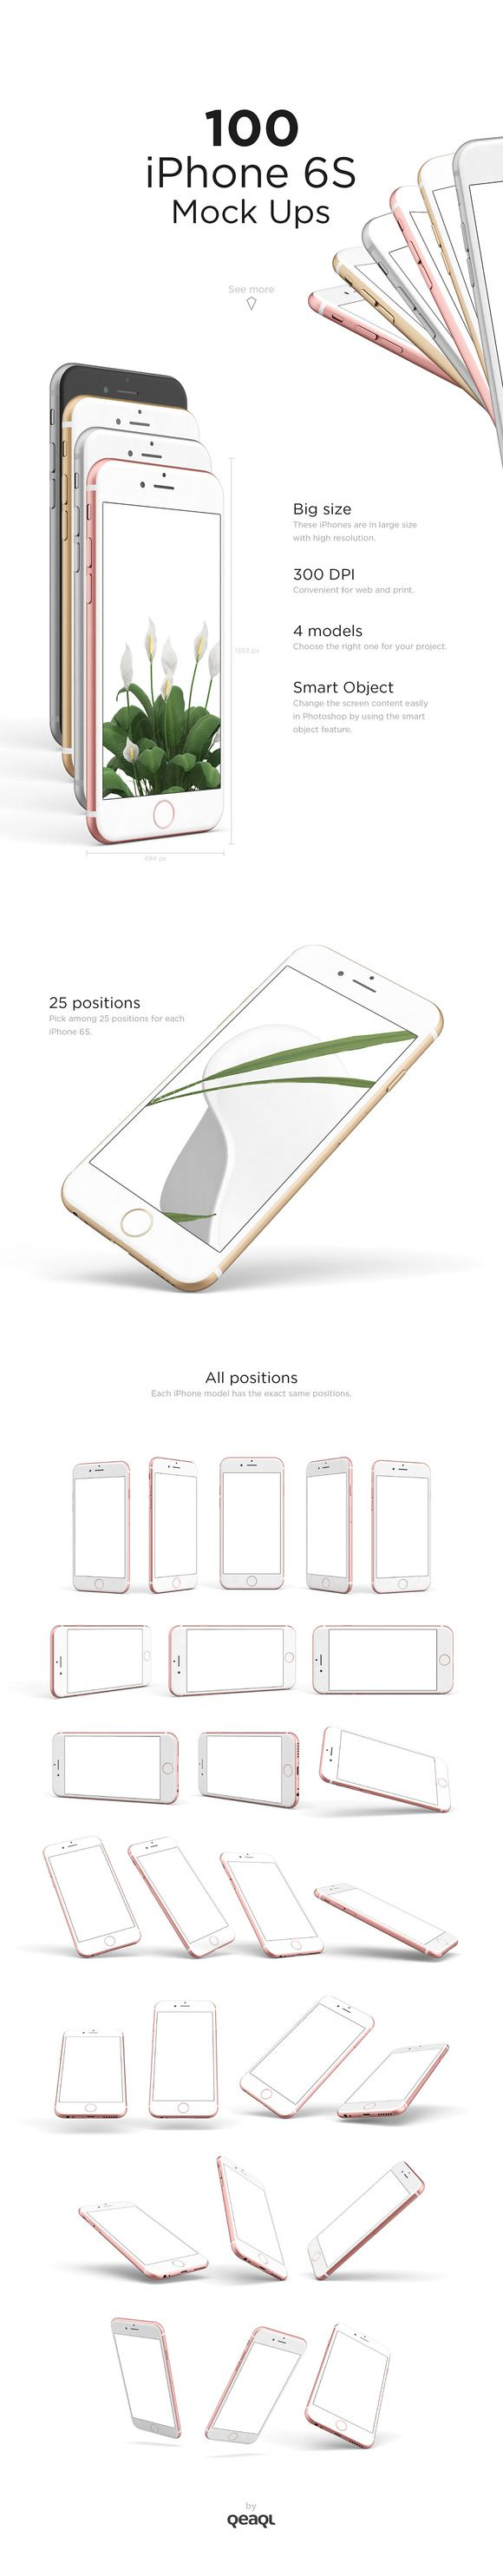 100 iPhone 6S Mock Ups by Qeaql on @creativemarket